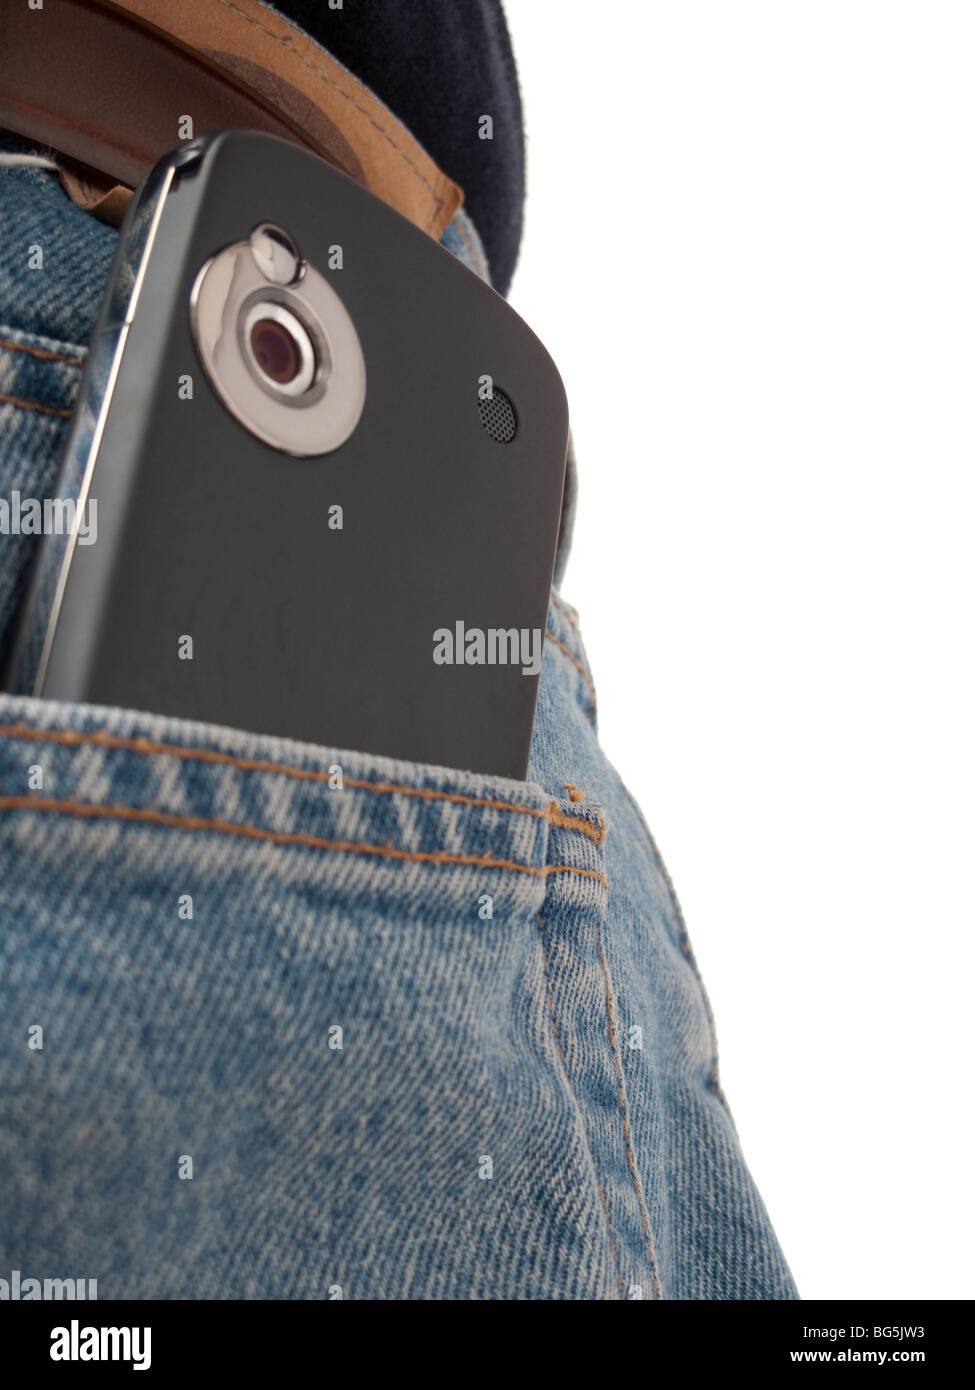 A PDA (Windows Mobile device) in a back pocket of an IT worker, wearing jeans, shot from behind, with back pocket - Stock Image